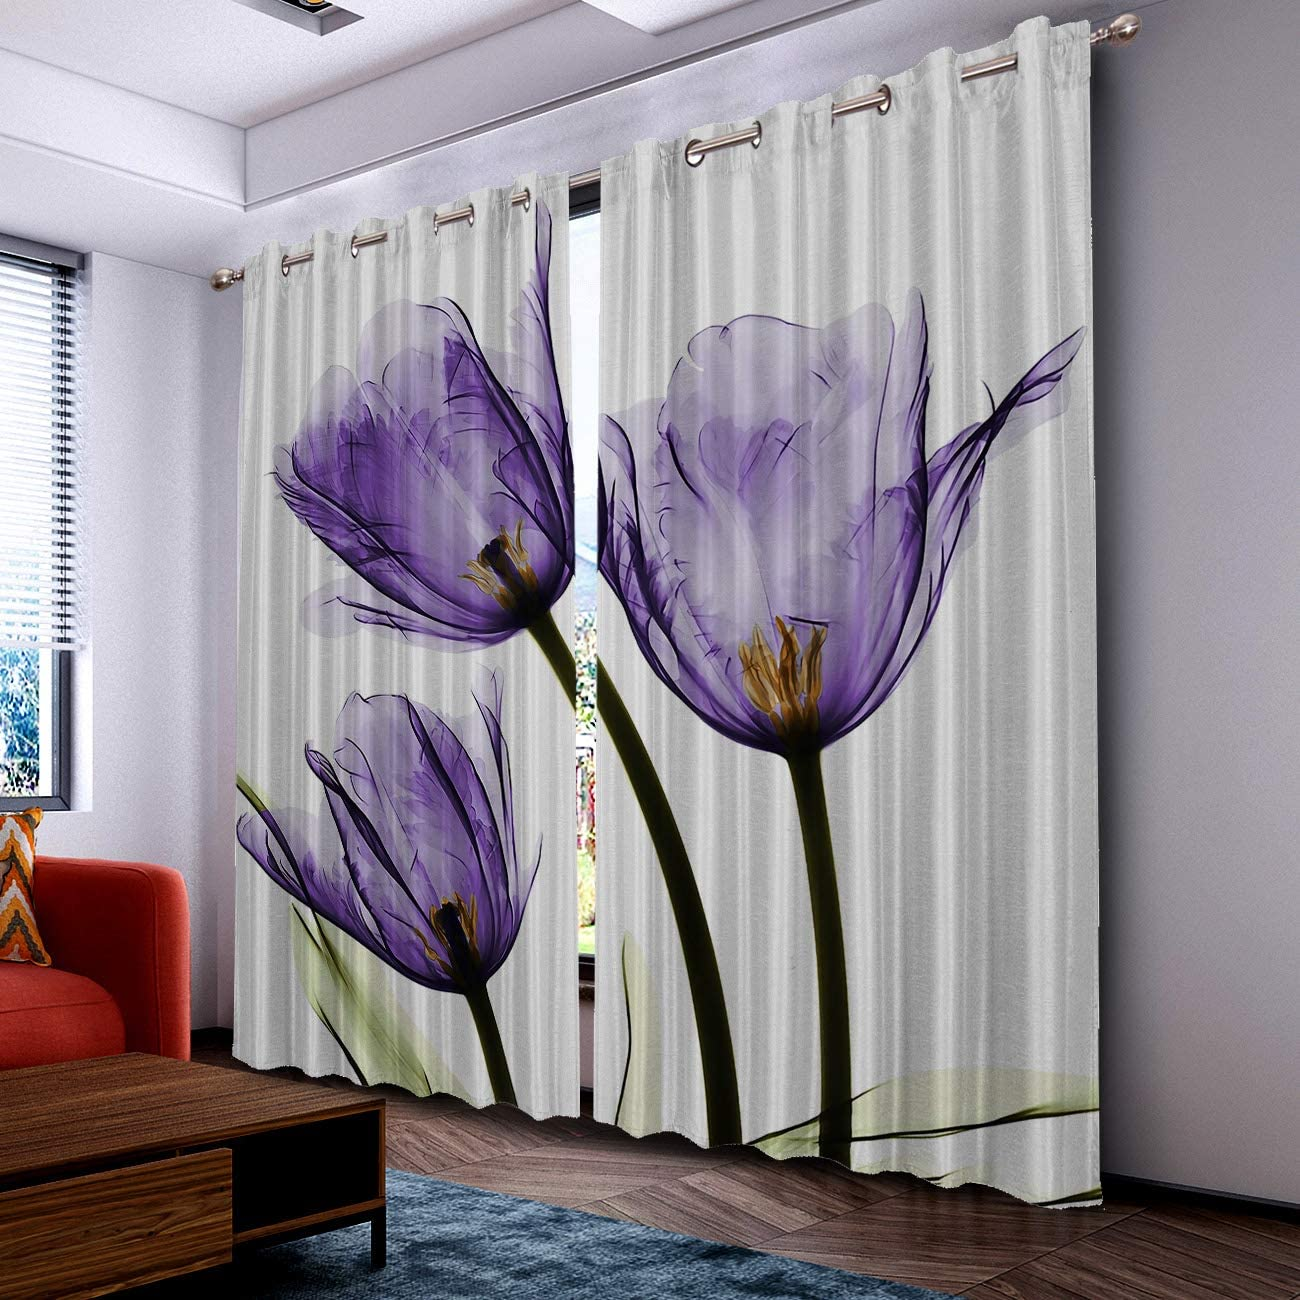 Fantasy Star Thermal Insulated Blackout Curtain for Bed Room- Purple Tulip Vibrant Watercolor Flower Darkening Blackout Curtain with Grommet, Set of 2 Panels, 52 x 84 , 2 Panels